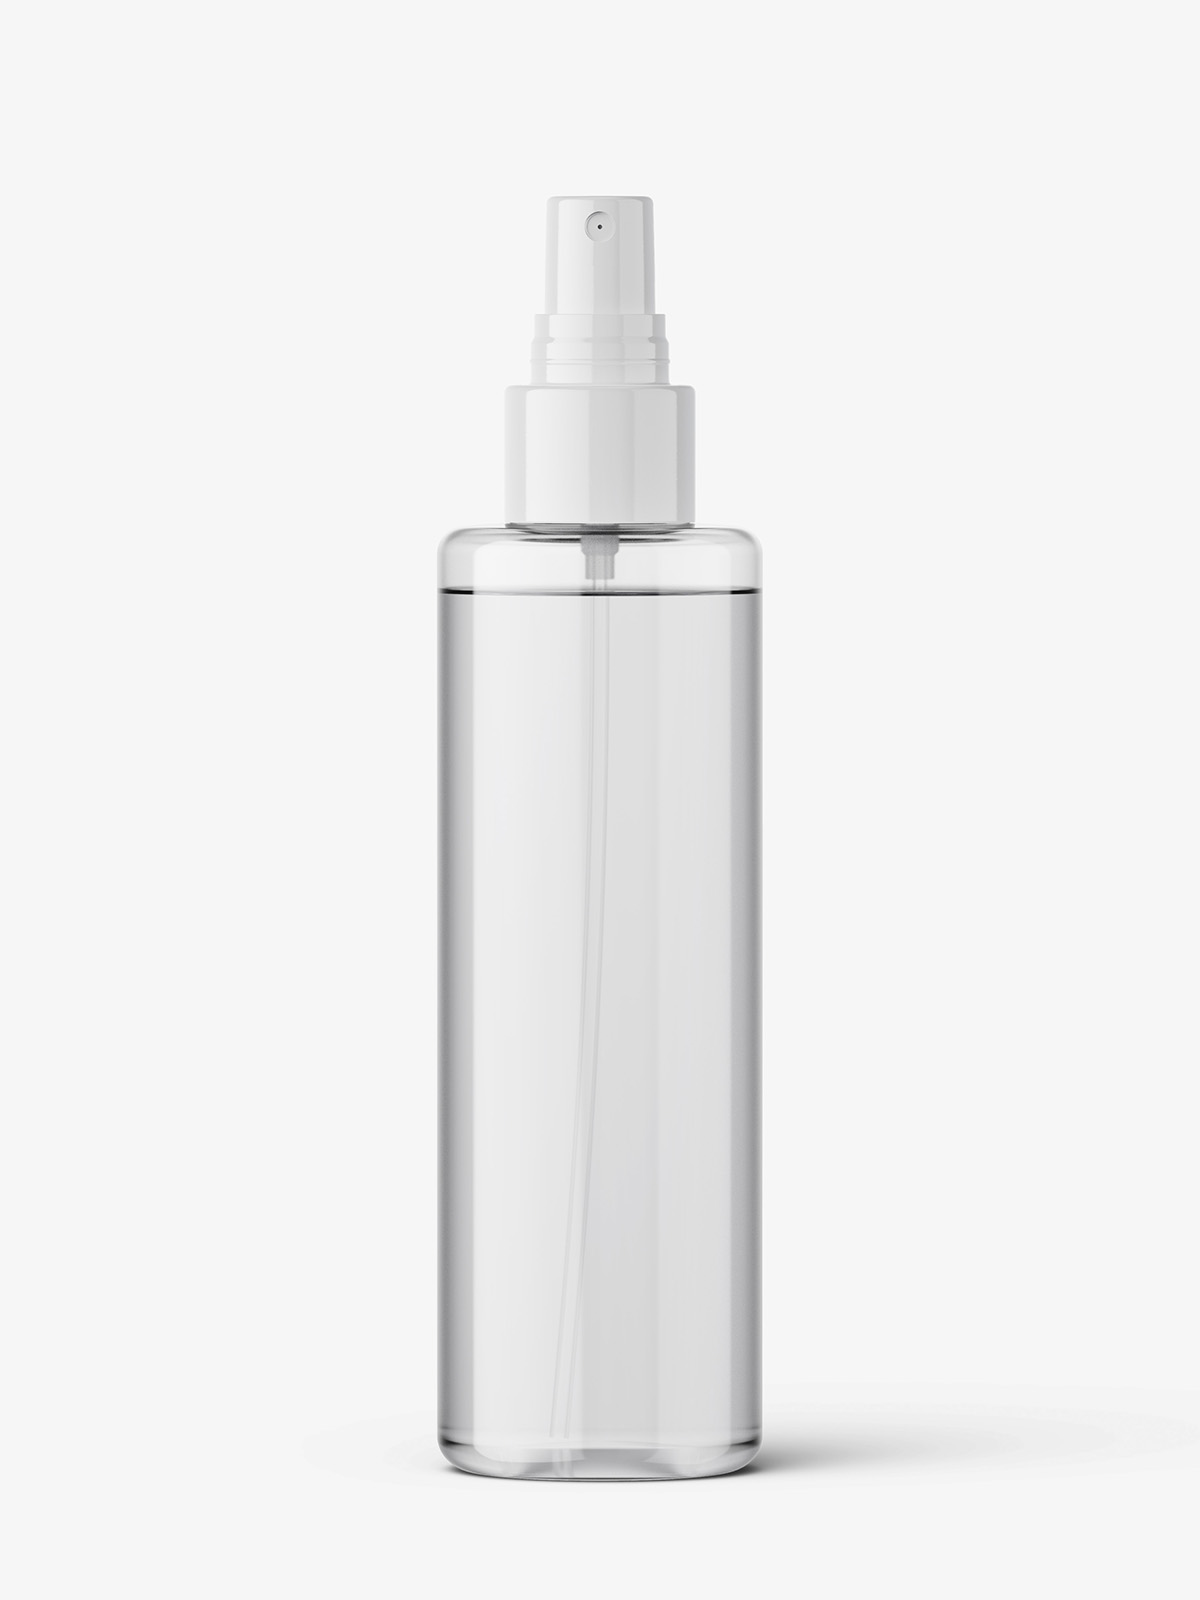 Transparent Spray Bottle Mockup Smarty Mockups